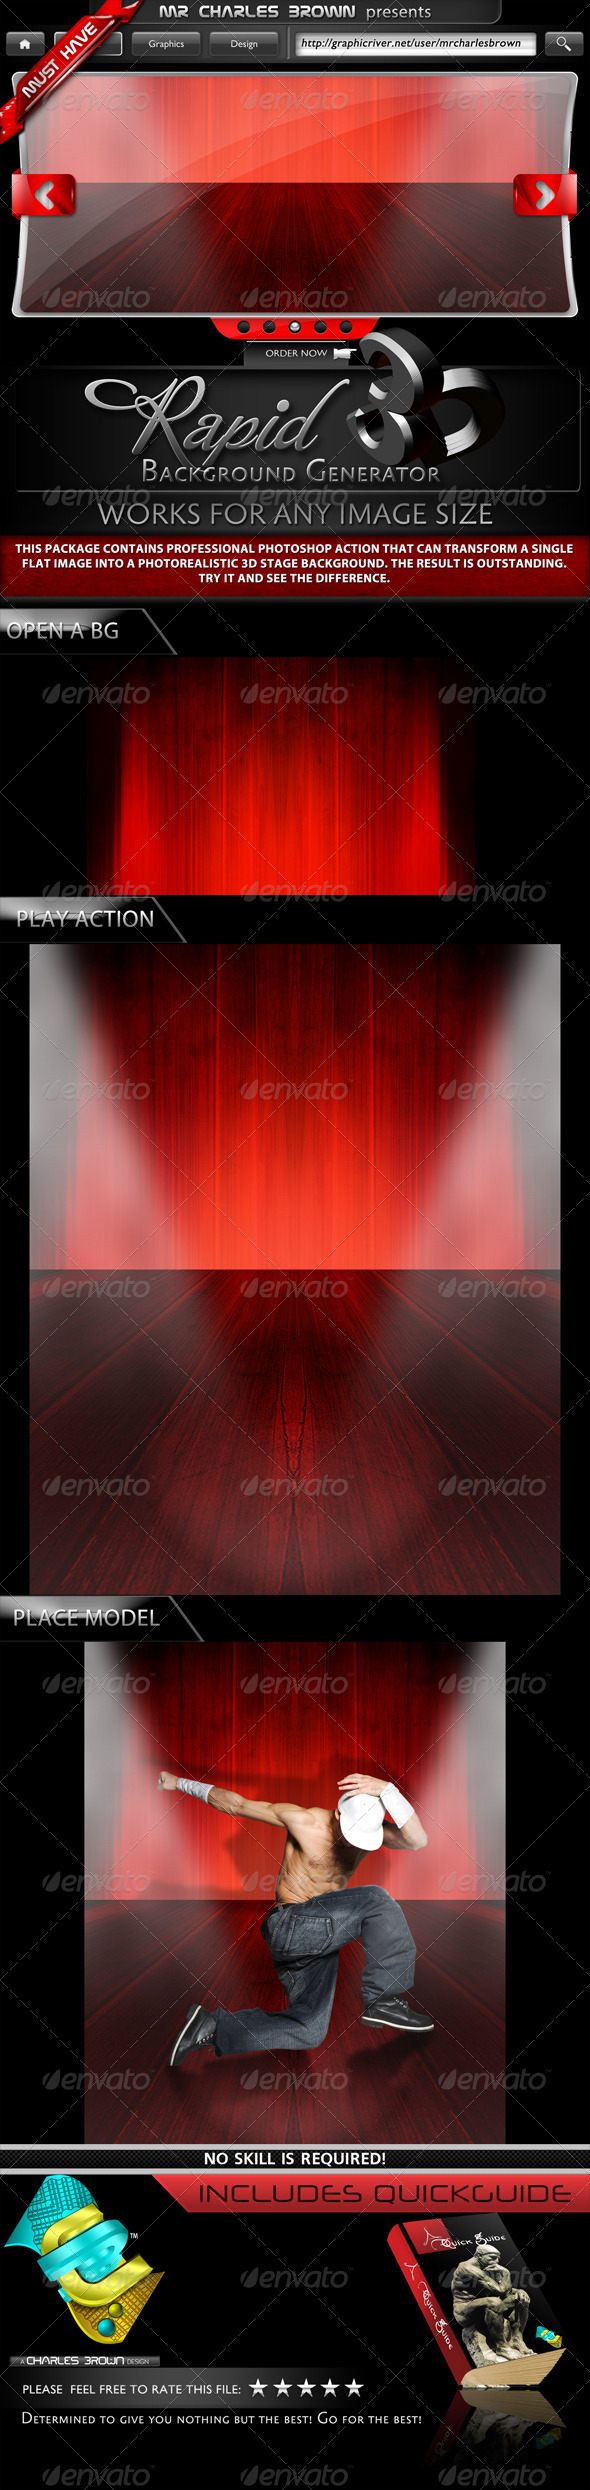 GraphicRiver Rapid 3D Background Generator 2085282